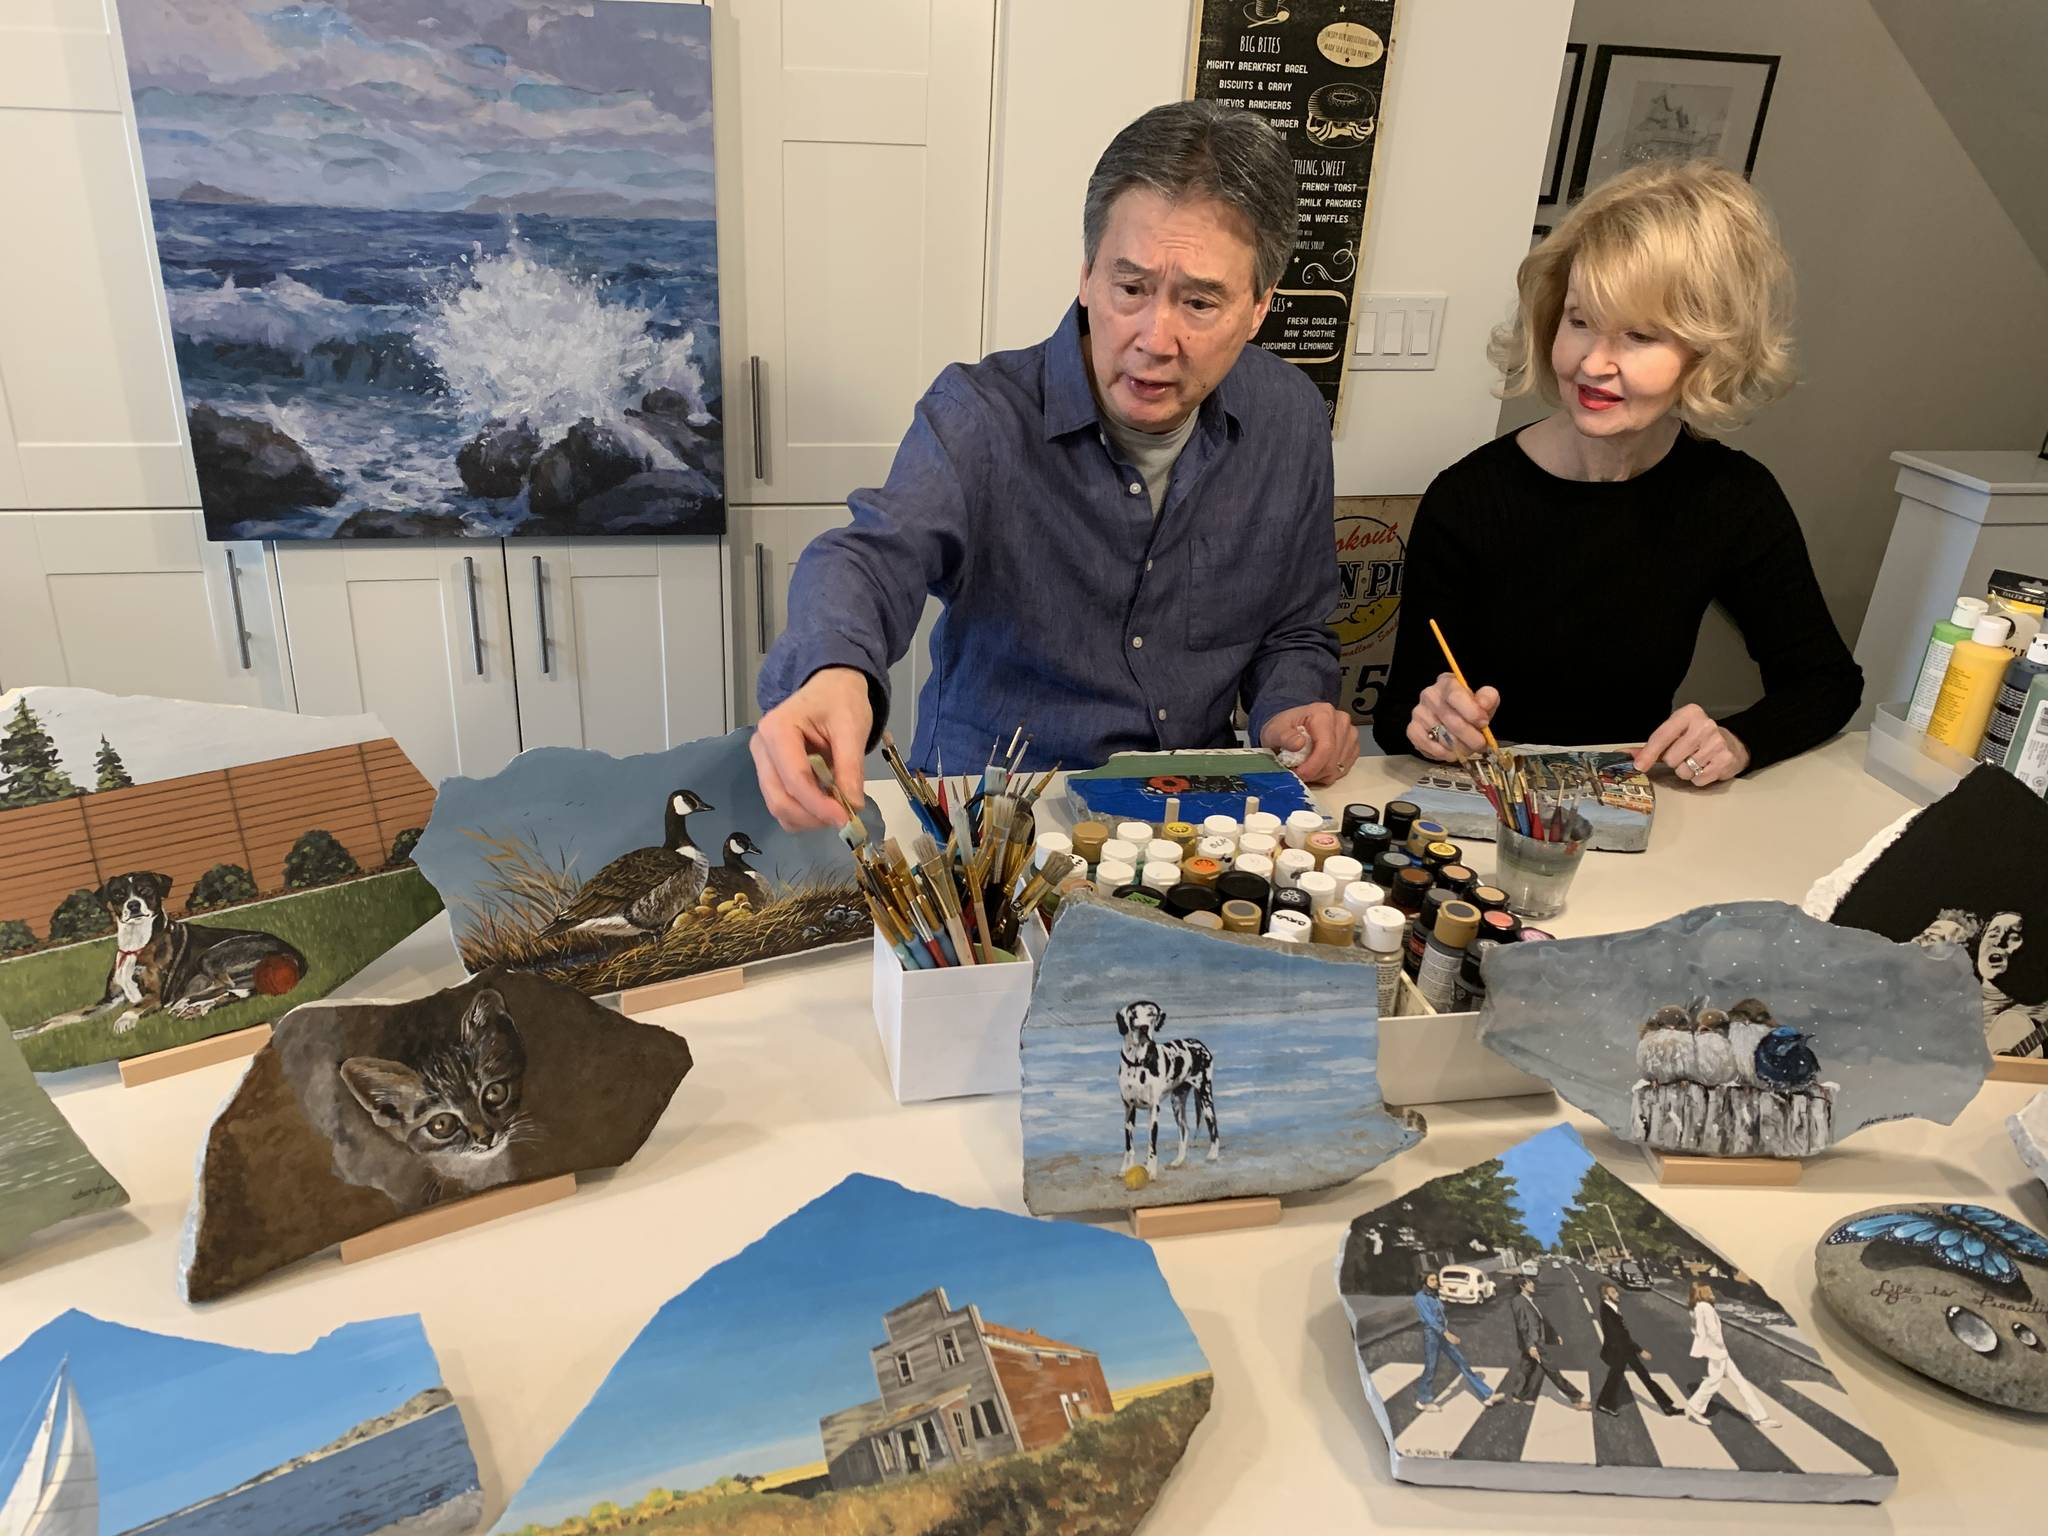 When the pandemic forced the shut down of playgrounds in Langley this past Spring it sparked creativity for these Langley grandparents Herb and Cherri Kwan, who found themselves picking up a paint brush to help keep the local kids occupied. (Bernadette Amiscaray/Special to Langley Advance Times)